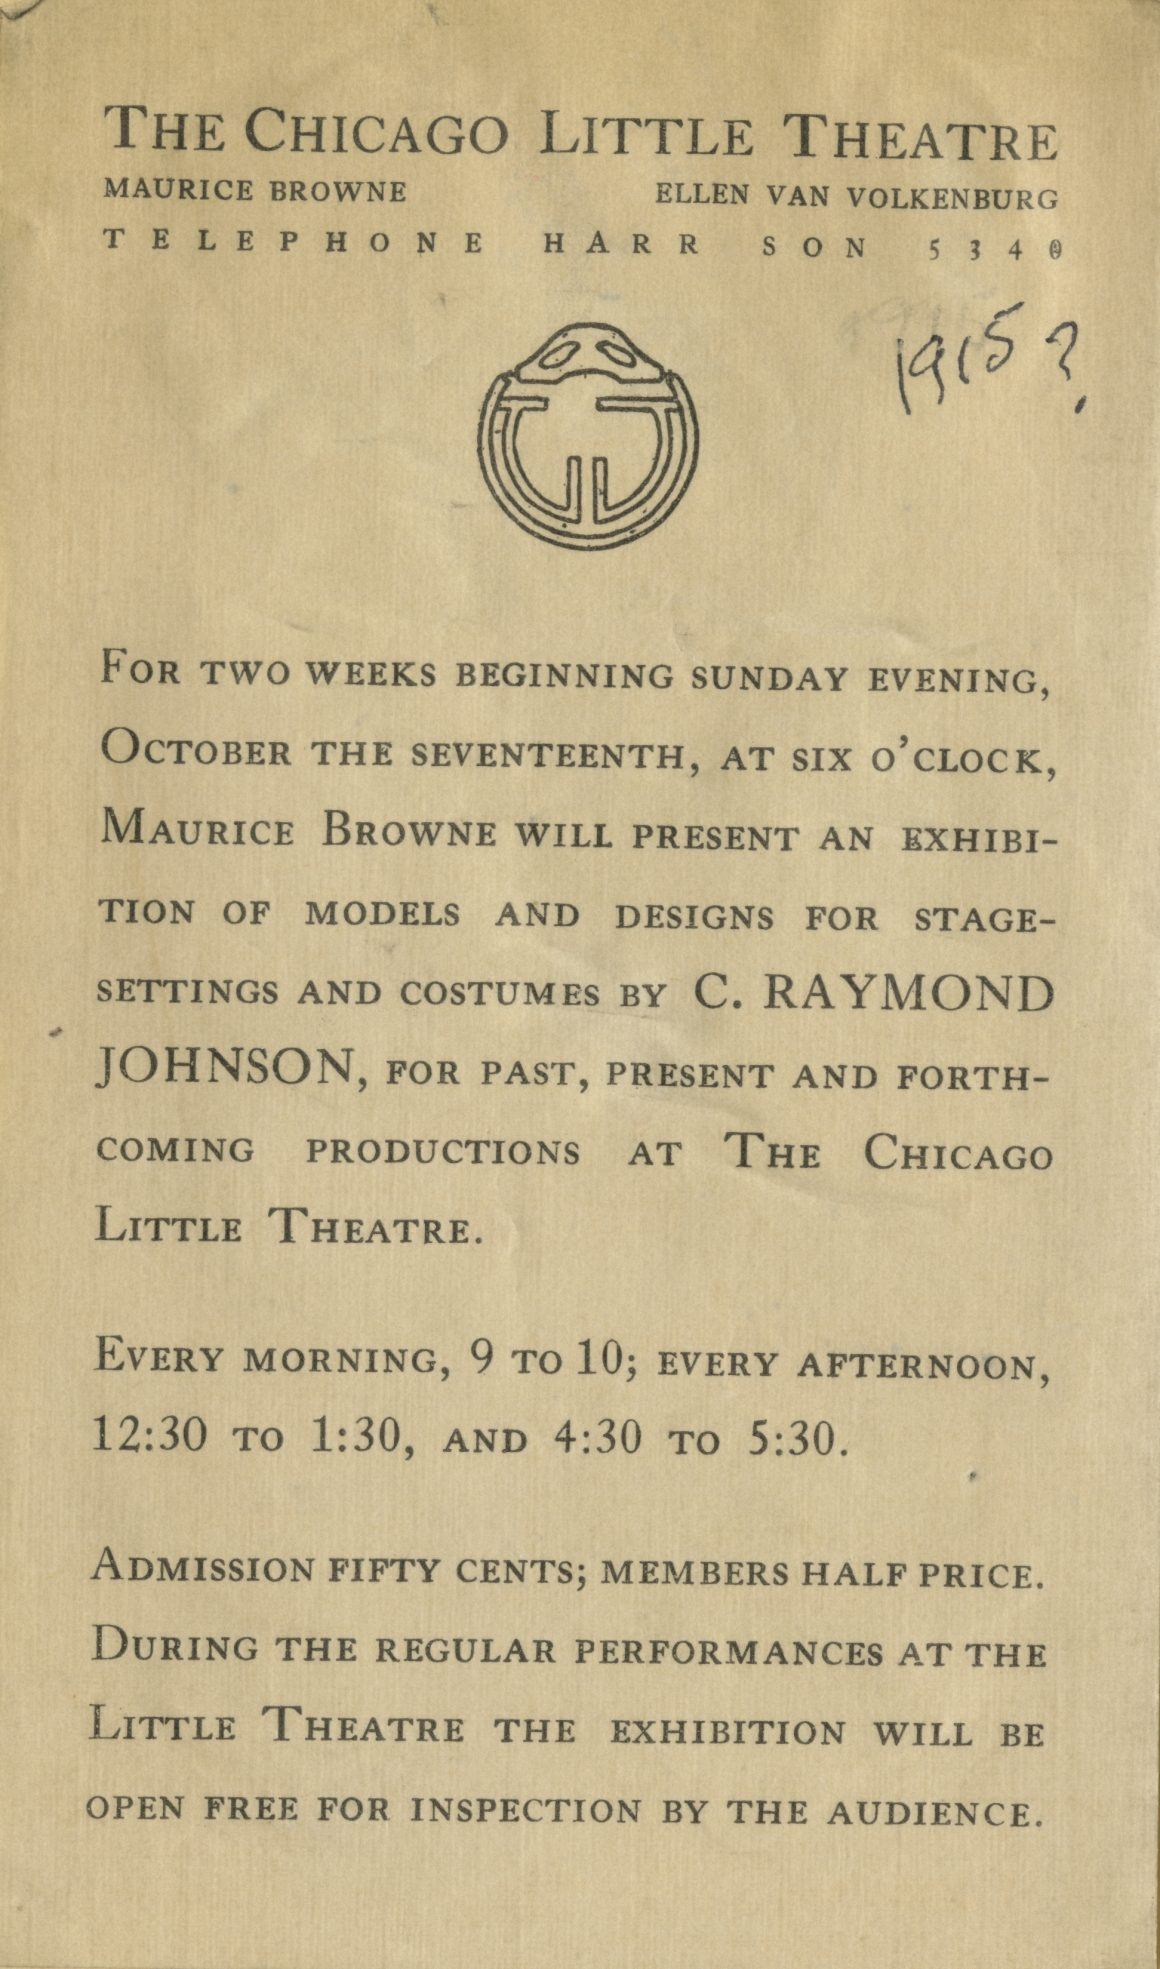 Chicago Little Theatre Exhibition of Models and Designs for Stage Settings, 1915